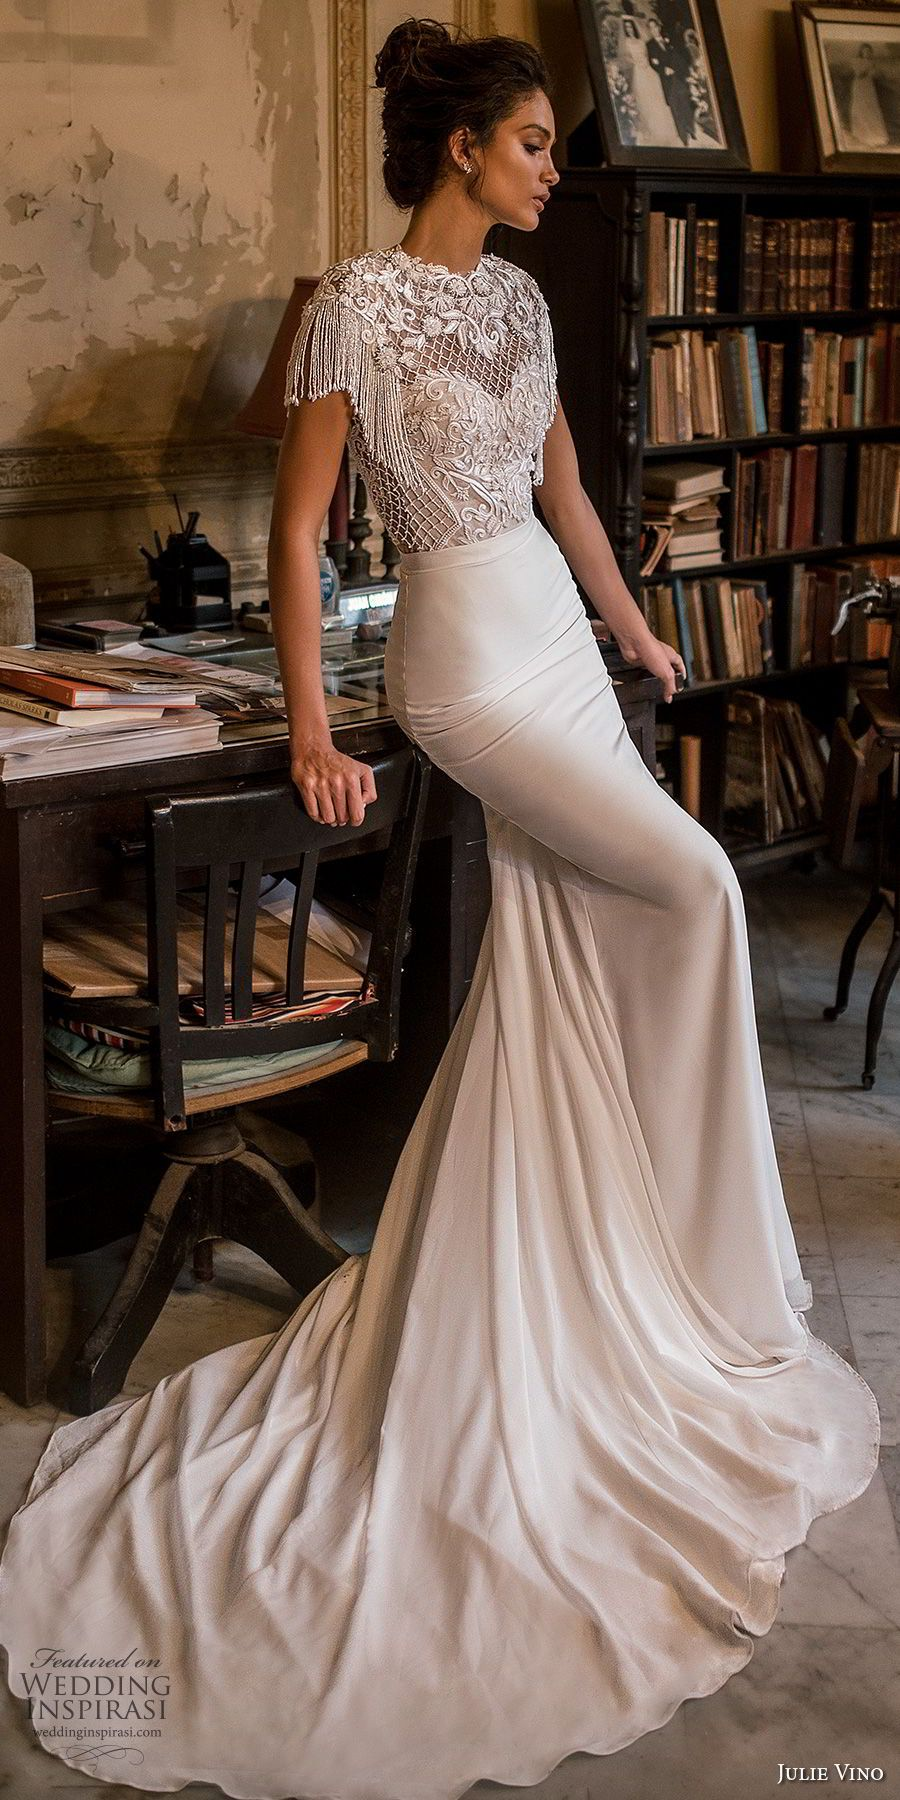 Wedding dresses pictures 2018 cr-v